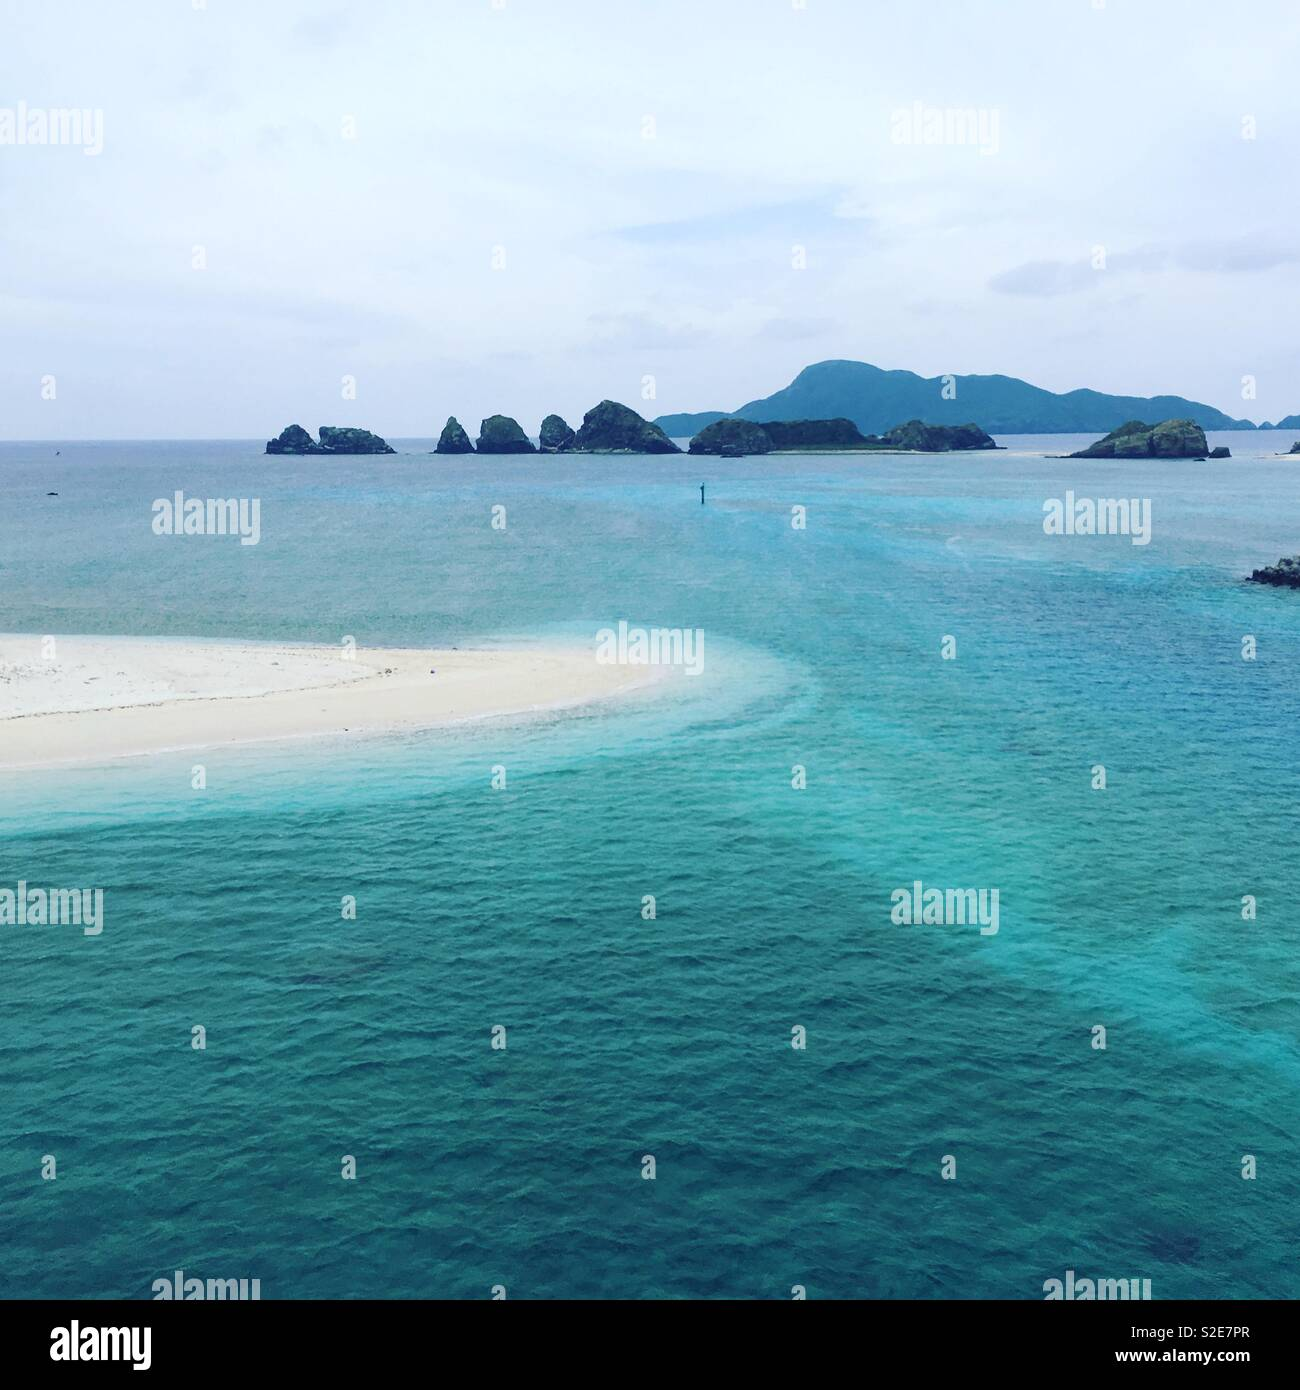 Island hopping - Stock Image